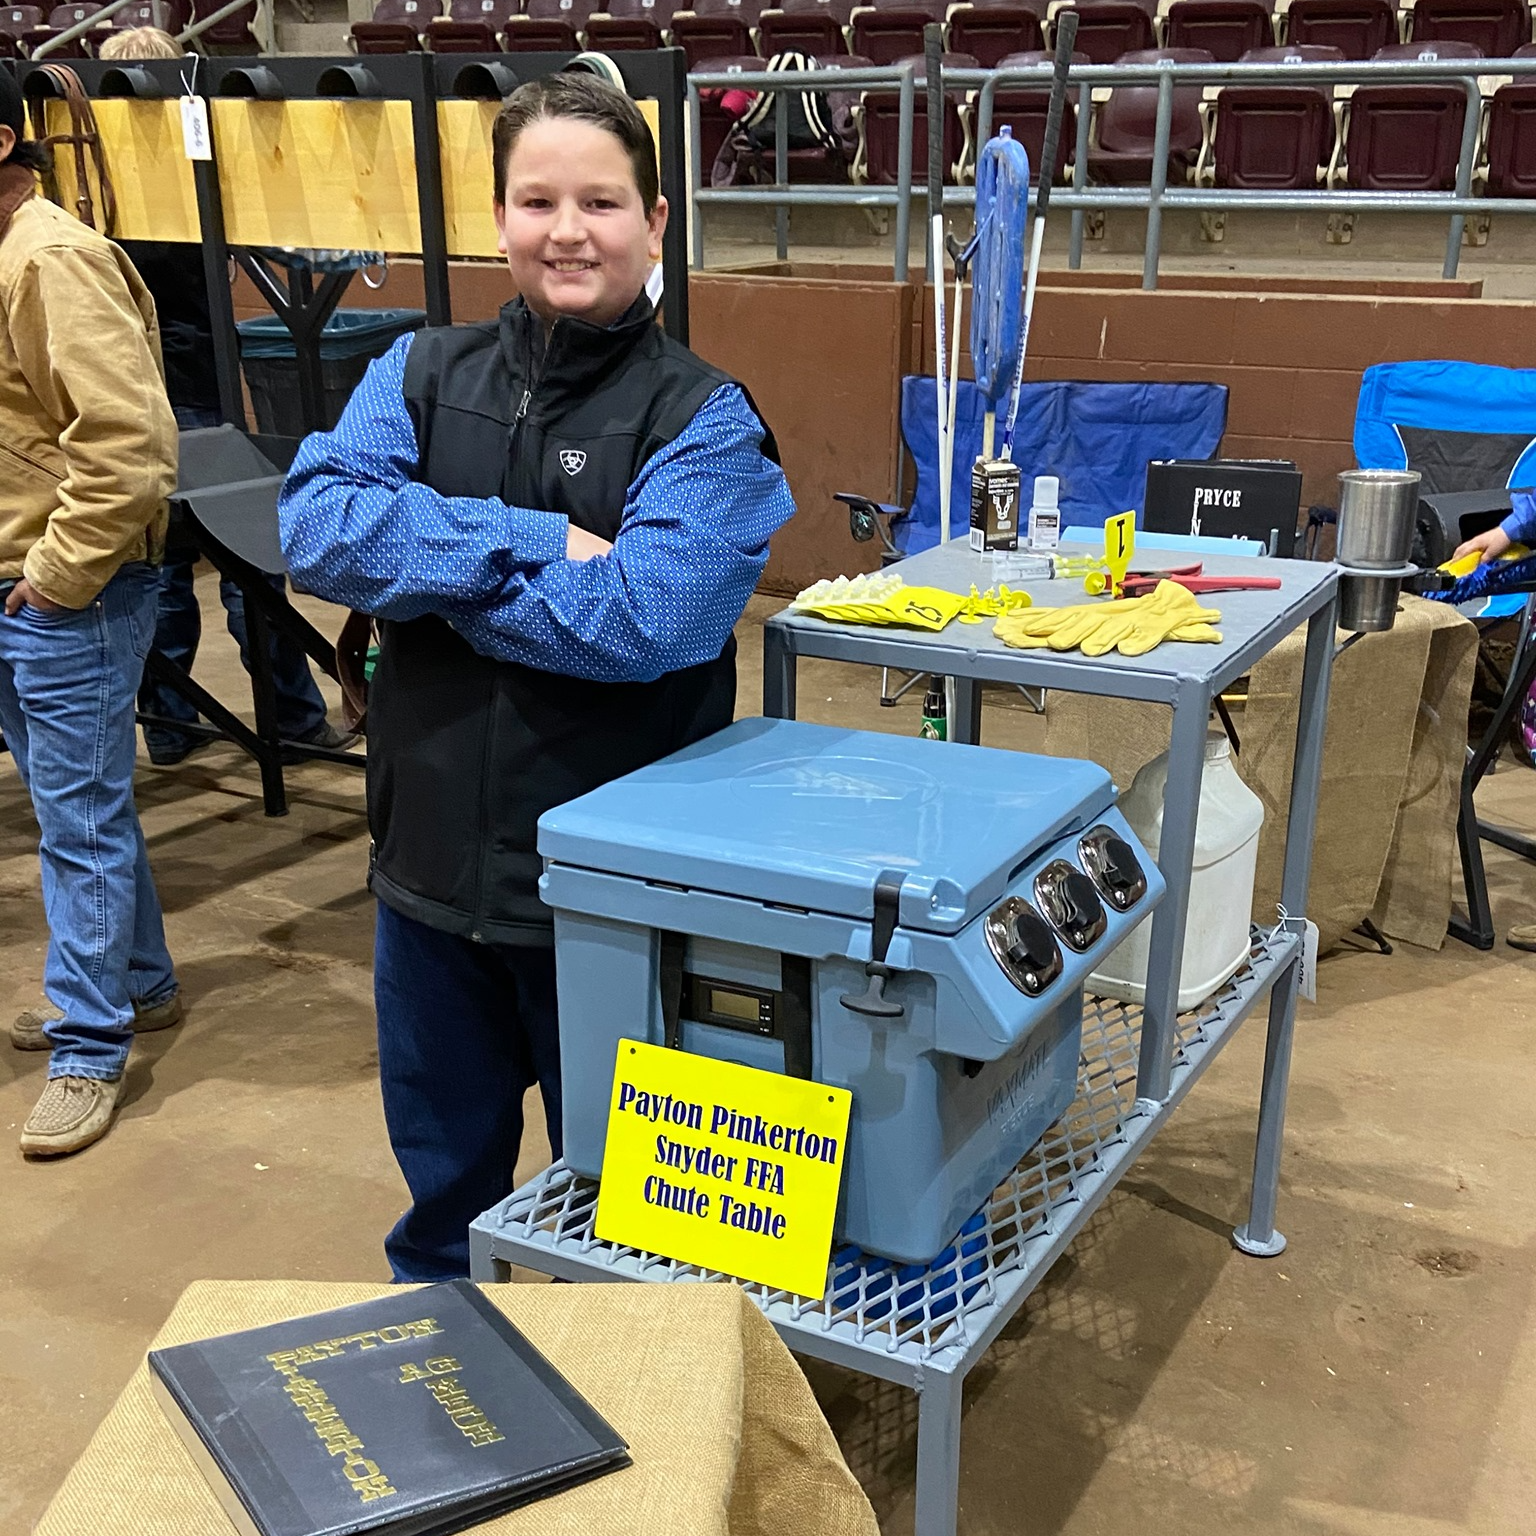 FFA student standing by table